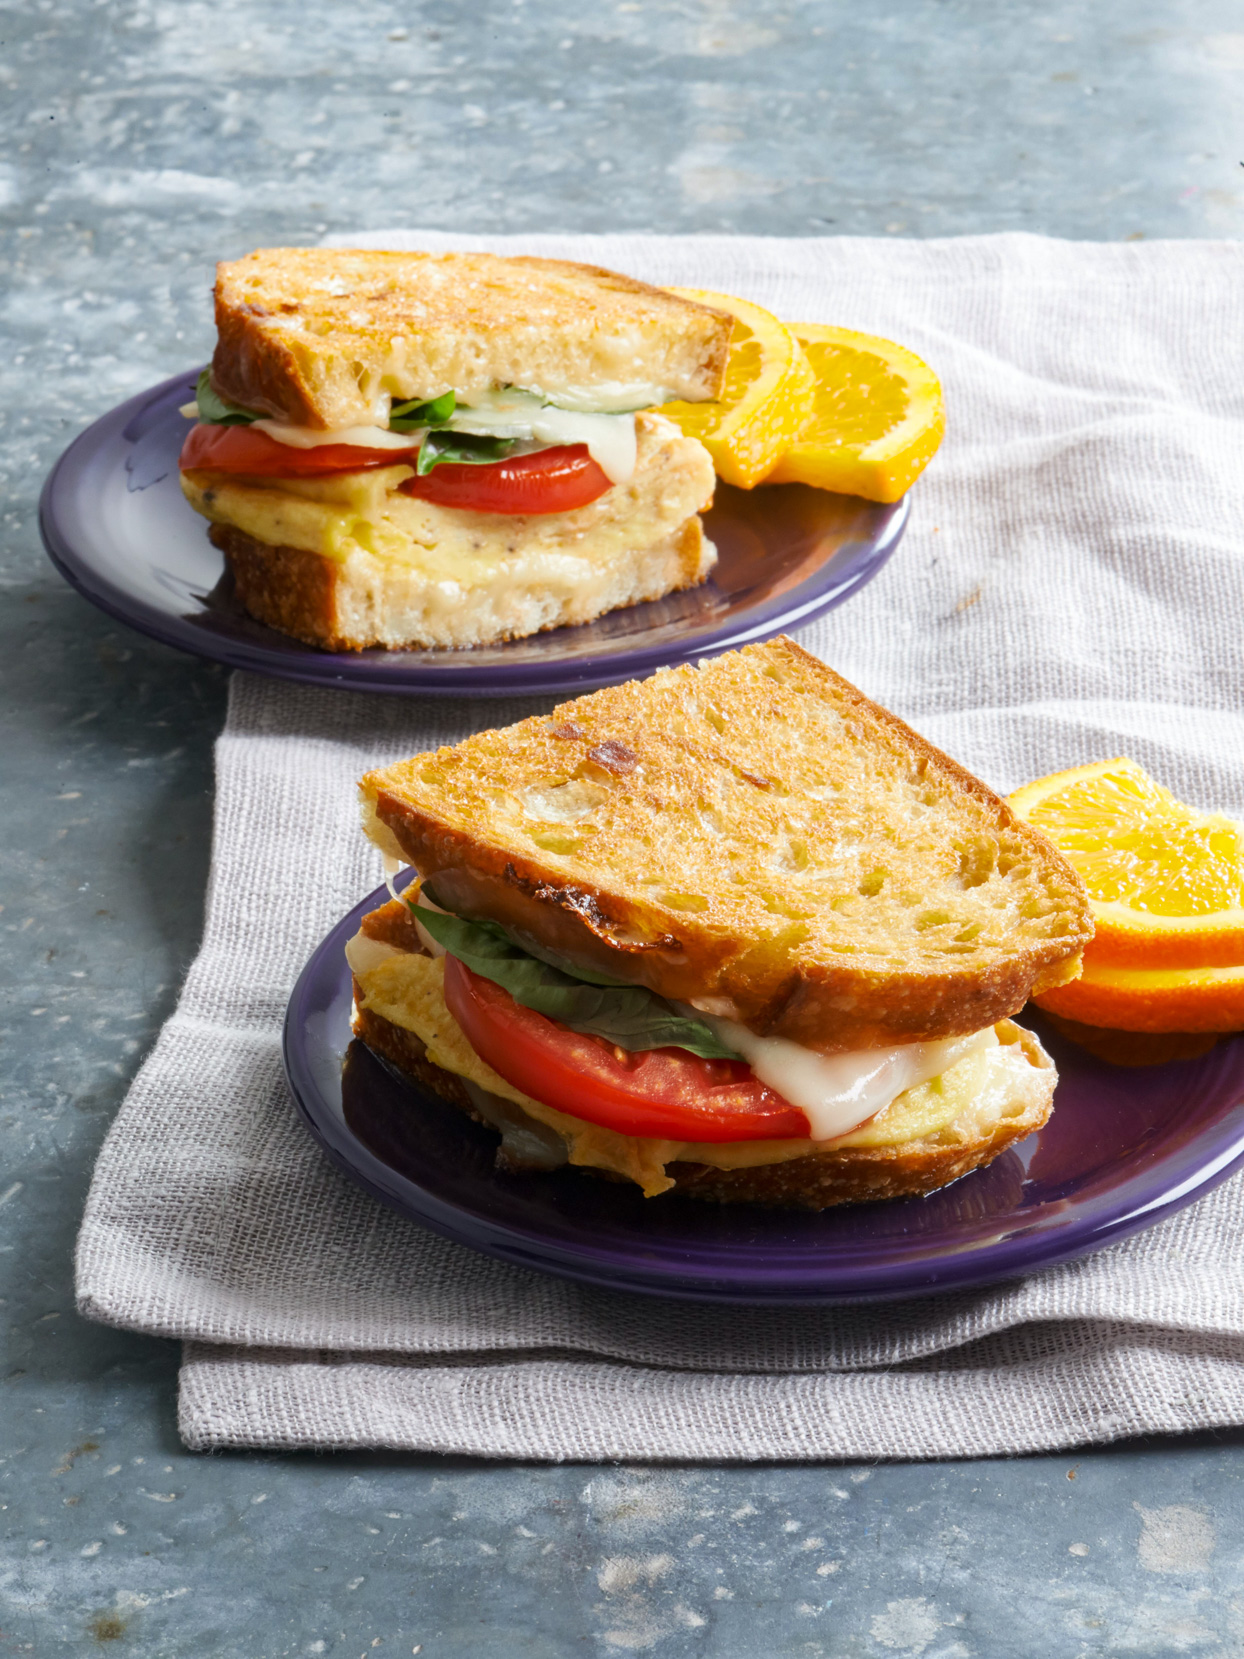 two Cheesy Egg Sandwiches on plates with orange slices